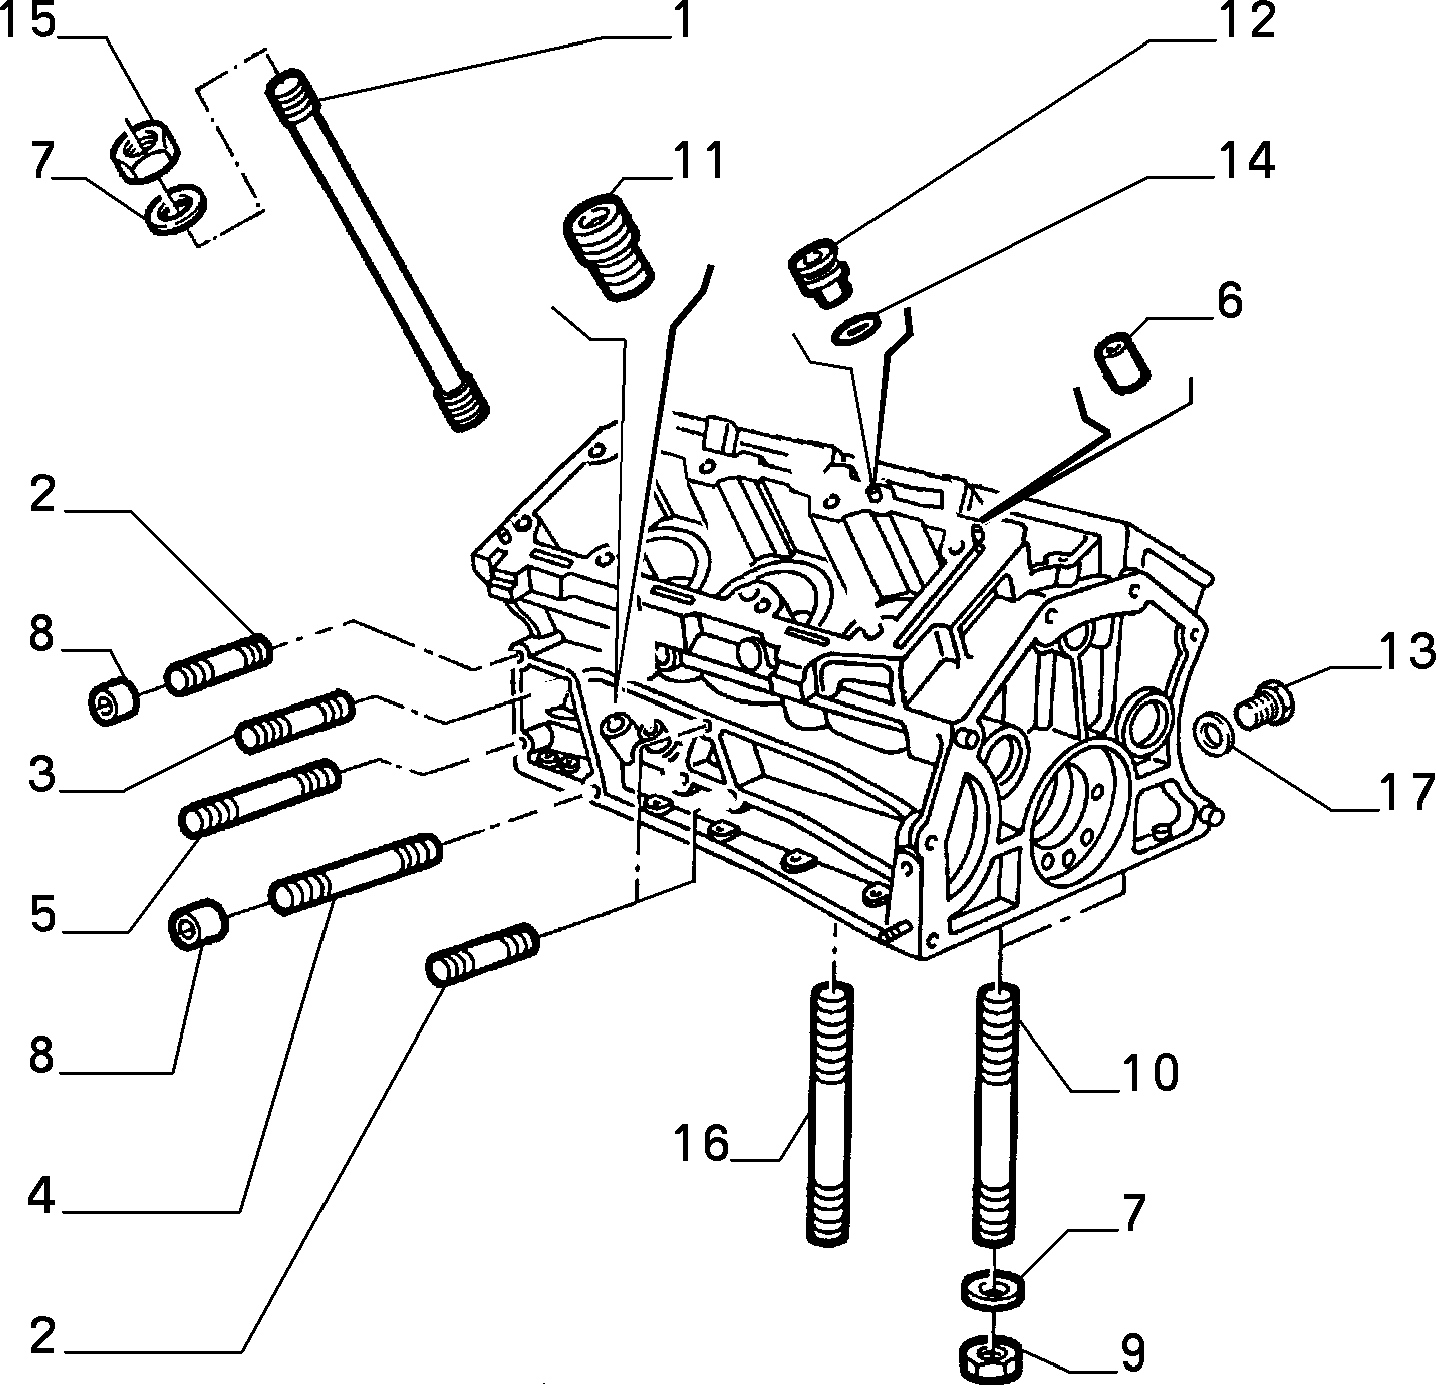 Wt 350 Chevy Engine Diagram Schematic Wiring